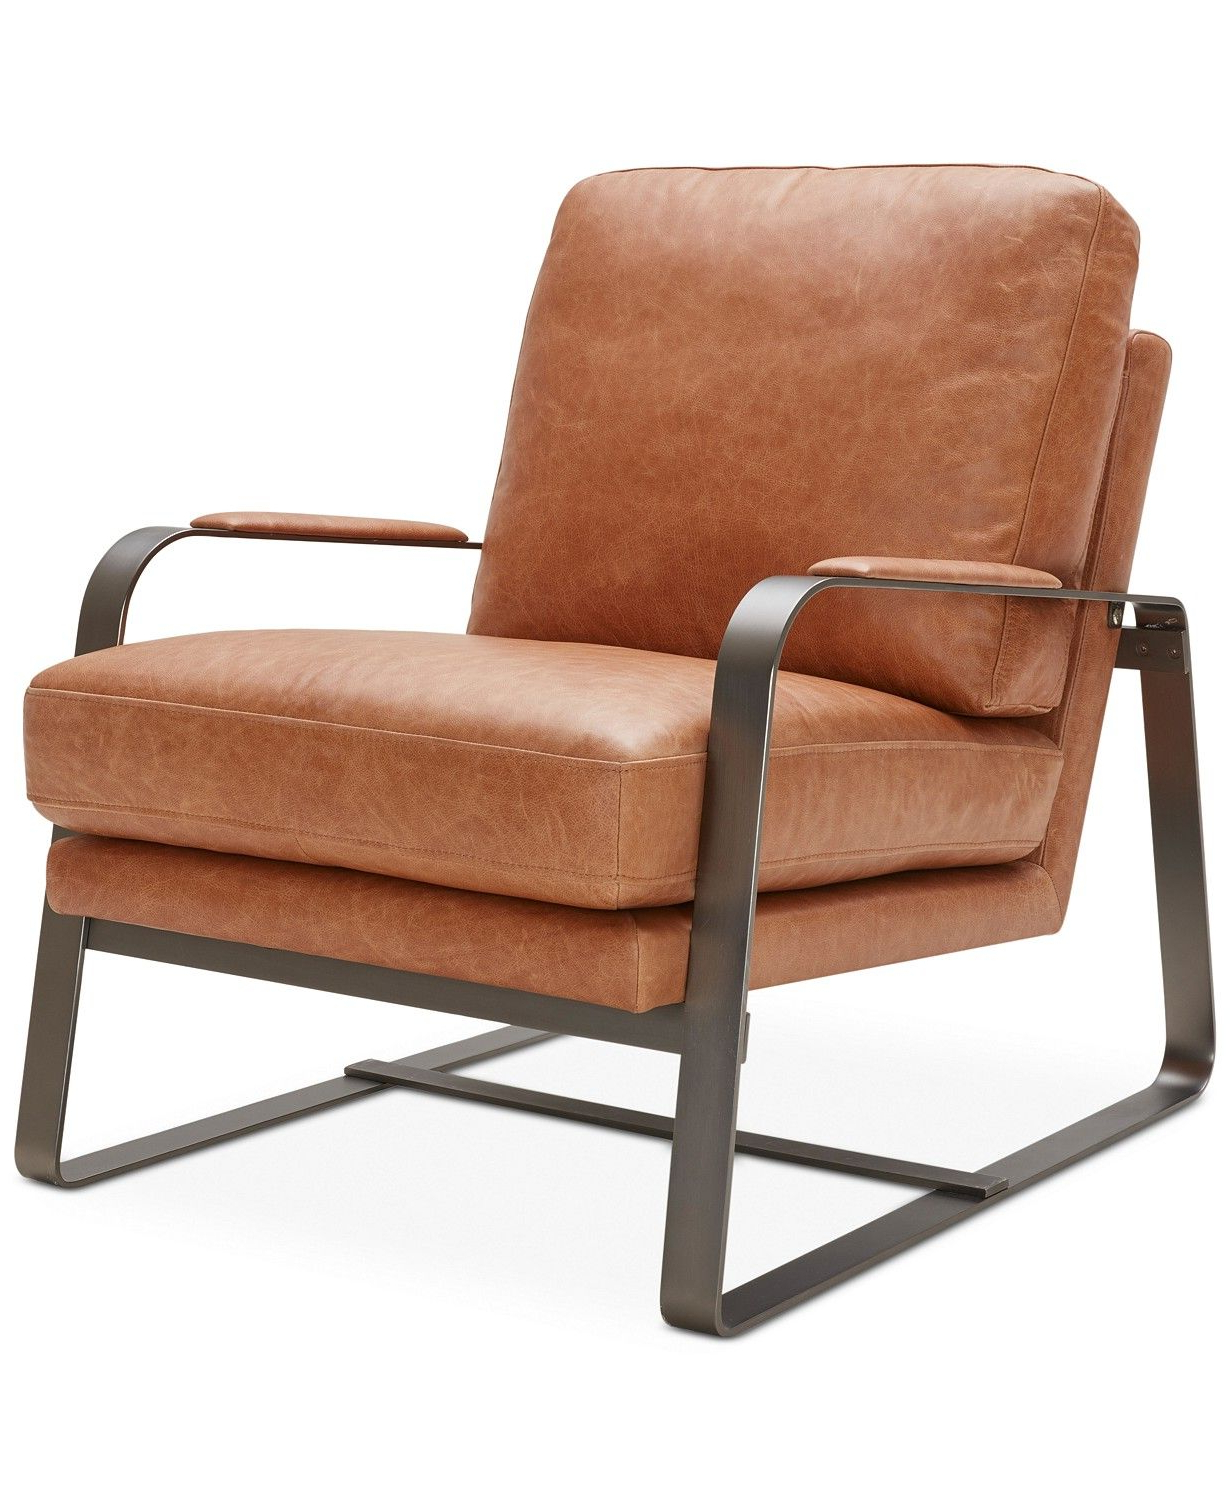 Famous Furniture Jollene Leather Accent Chair & Reviews – Chairs Throughout Riley Retro Mid Century Modern Fabric Upholstered Left Facing Chaise Sectional Sofas (View 6 of 20)